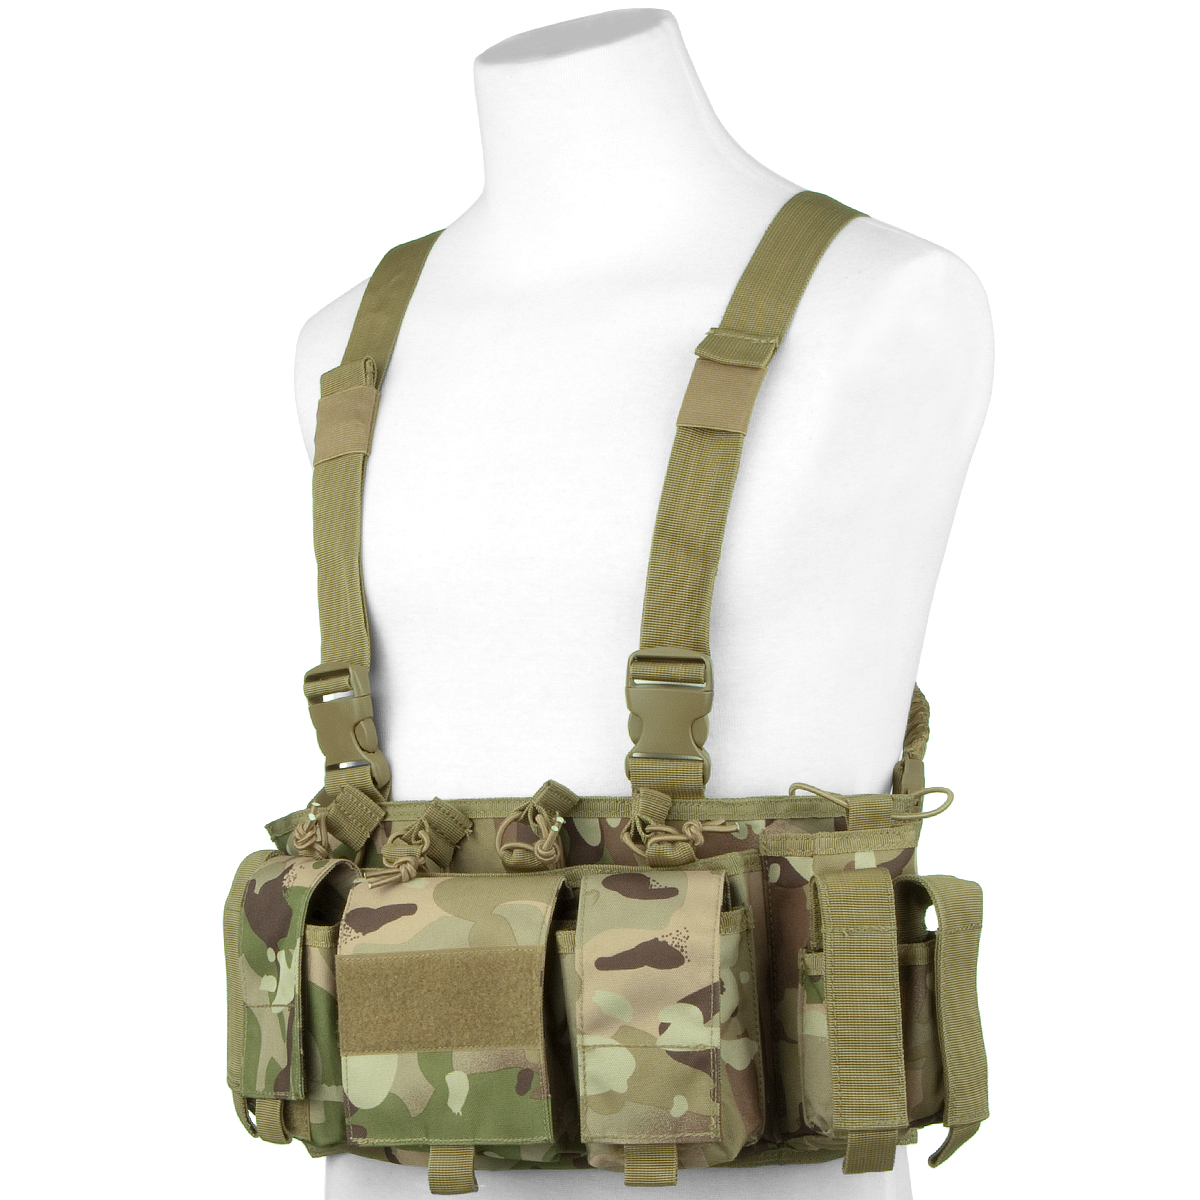 Fight Light Gear From Tactical Tailor A Review By Eaglelement besides Usmc M88 Pasgt Hemlet Cover Acu P 929 moreover T53900 2 as well Watch together with 67. on tactical radio pouch